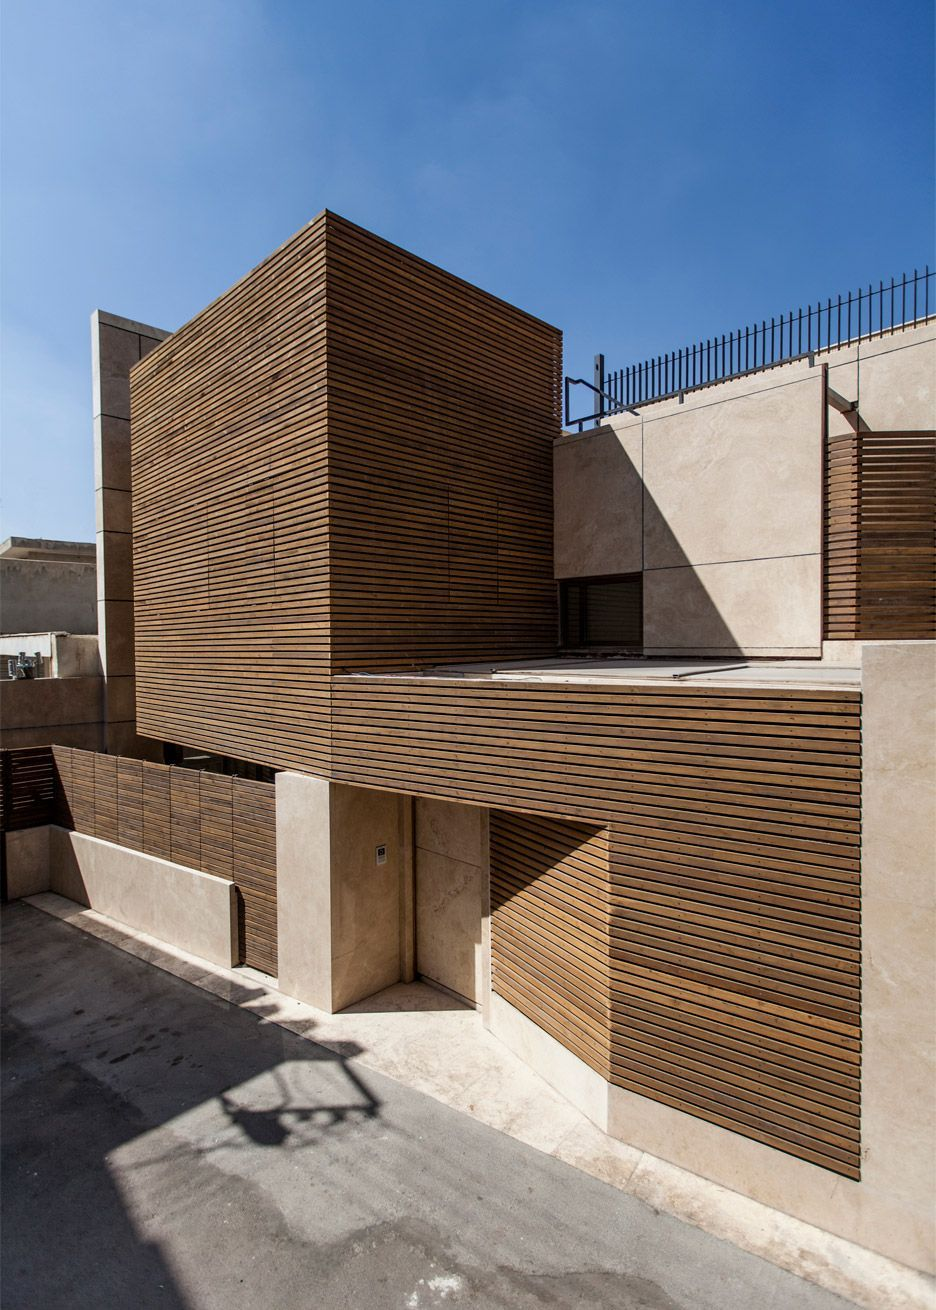 Architecture Modern Architecture Facade House: Modern Home In Iran Features Striking Slatted-Timber Exterior